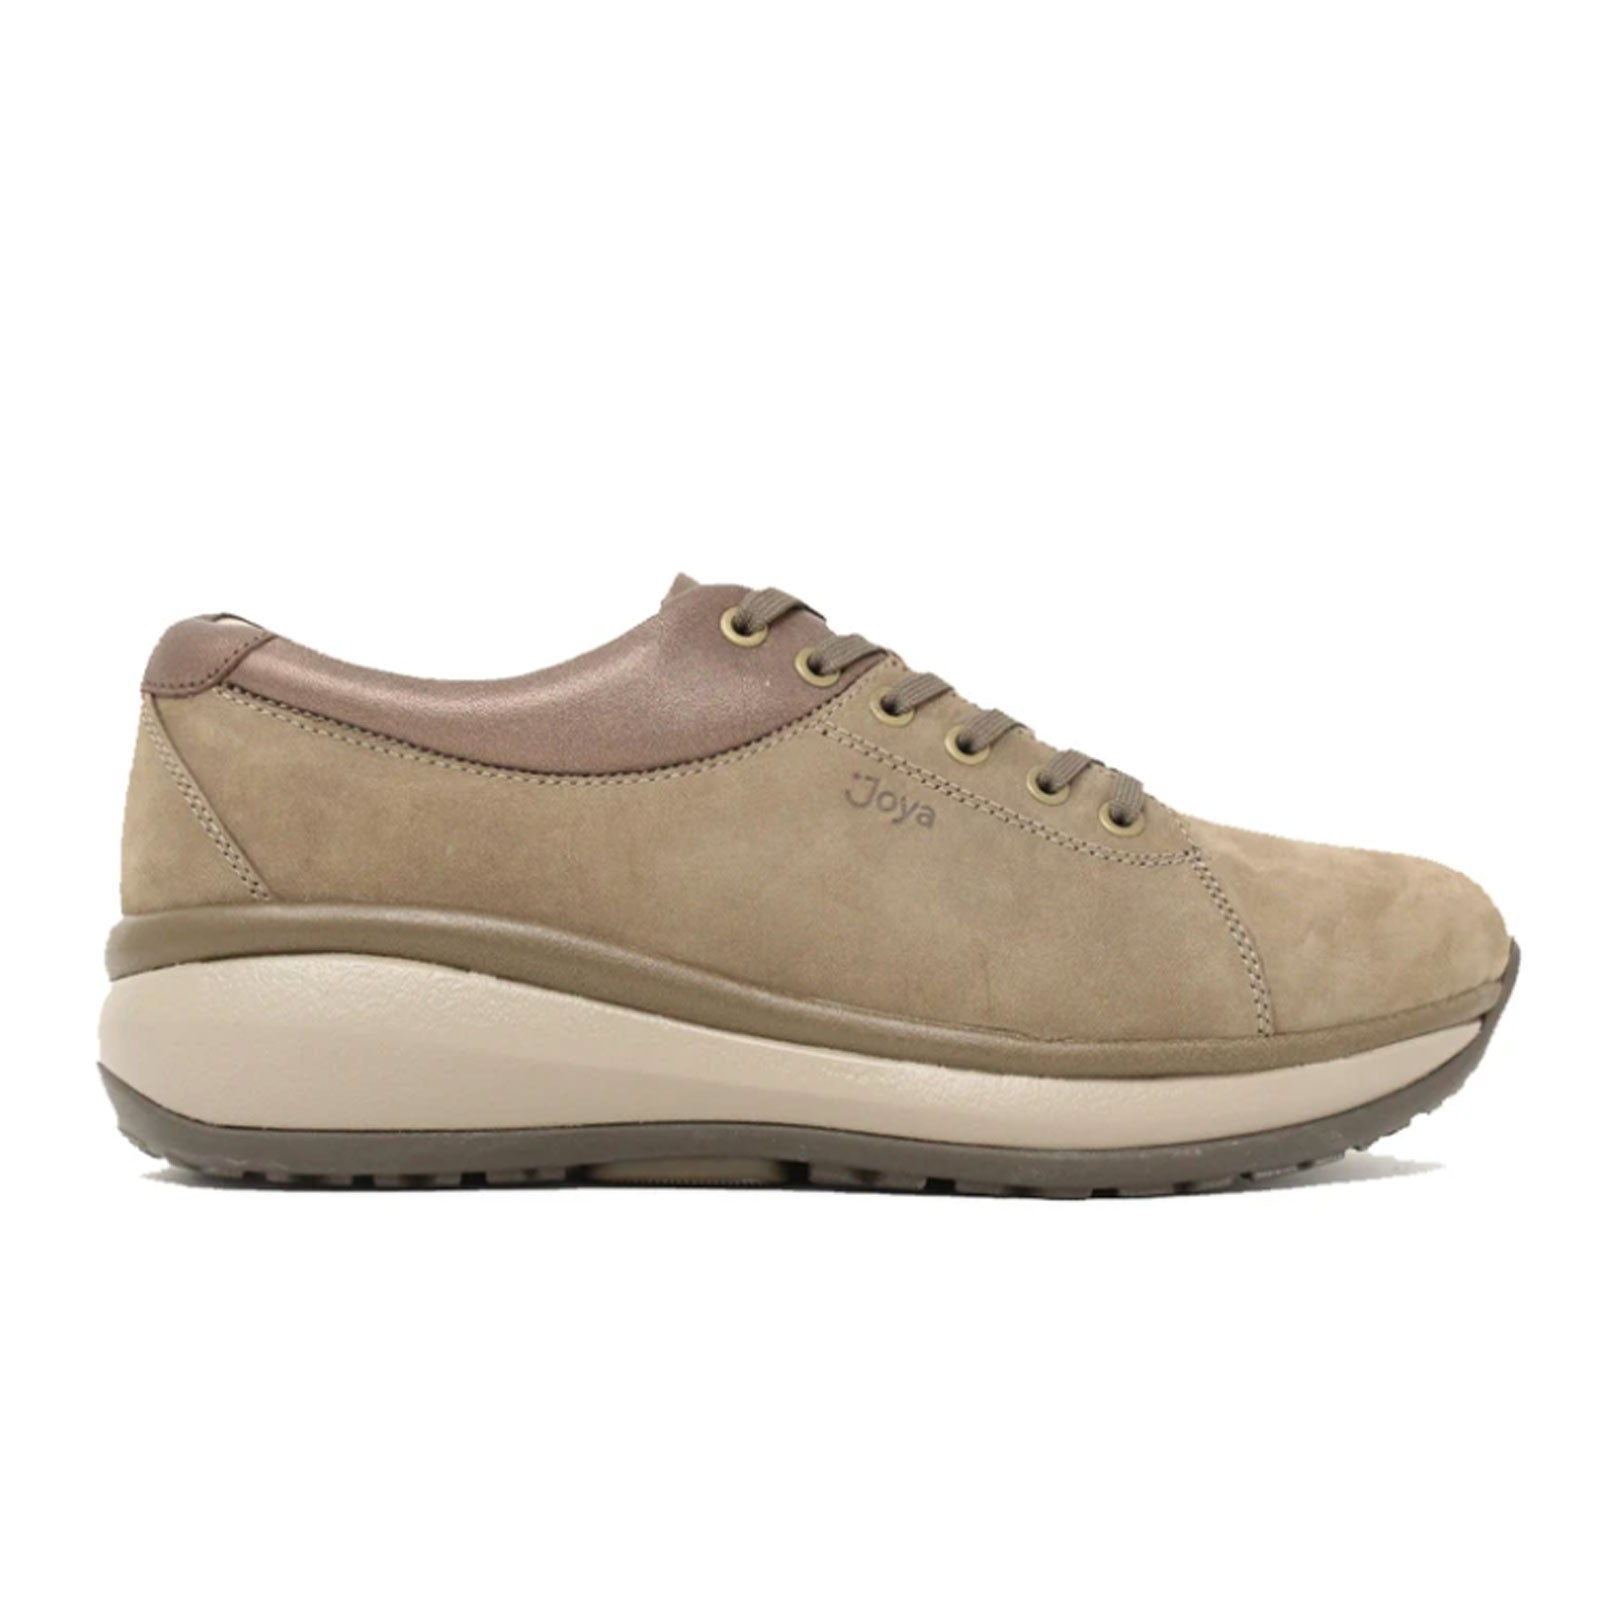 Joya Athena (Women) - Teak Dress/Casual|Lace Ups - The Heel Shoe Fitters